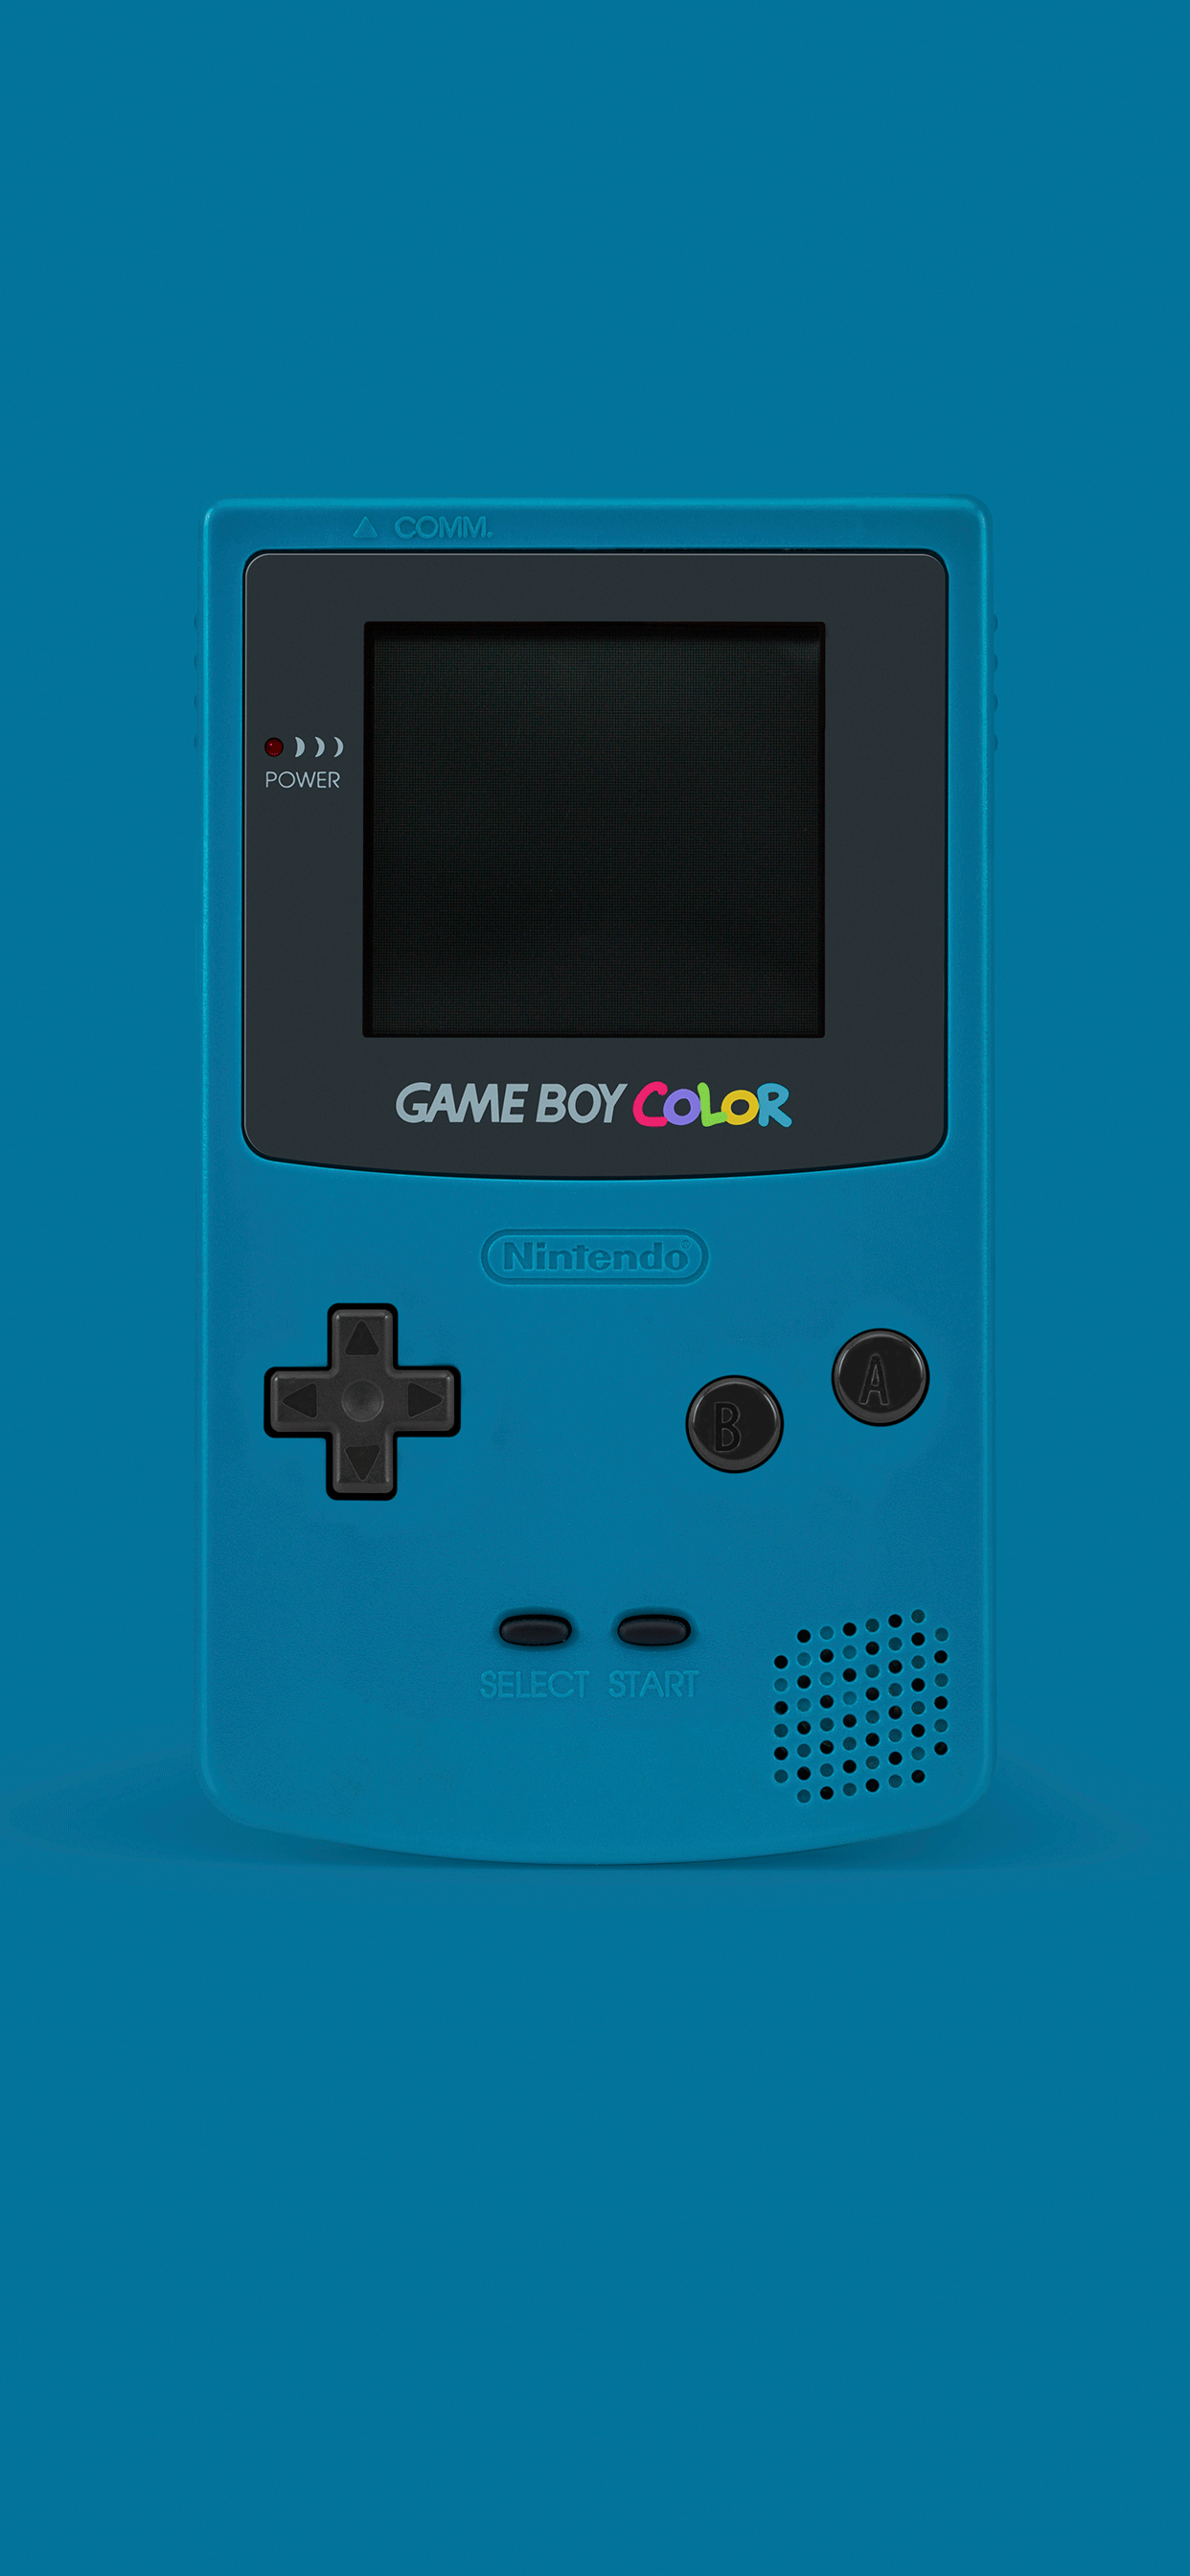 iPhone wallpapers game boy color turquoise Fonds d'écran iPhone du 10/05/2019